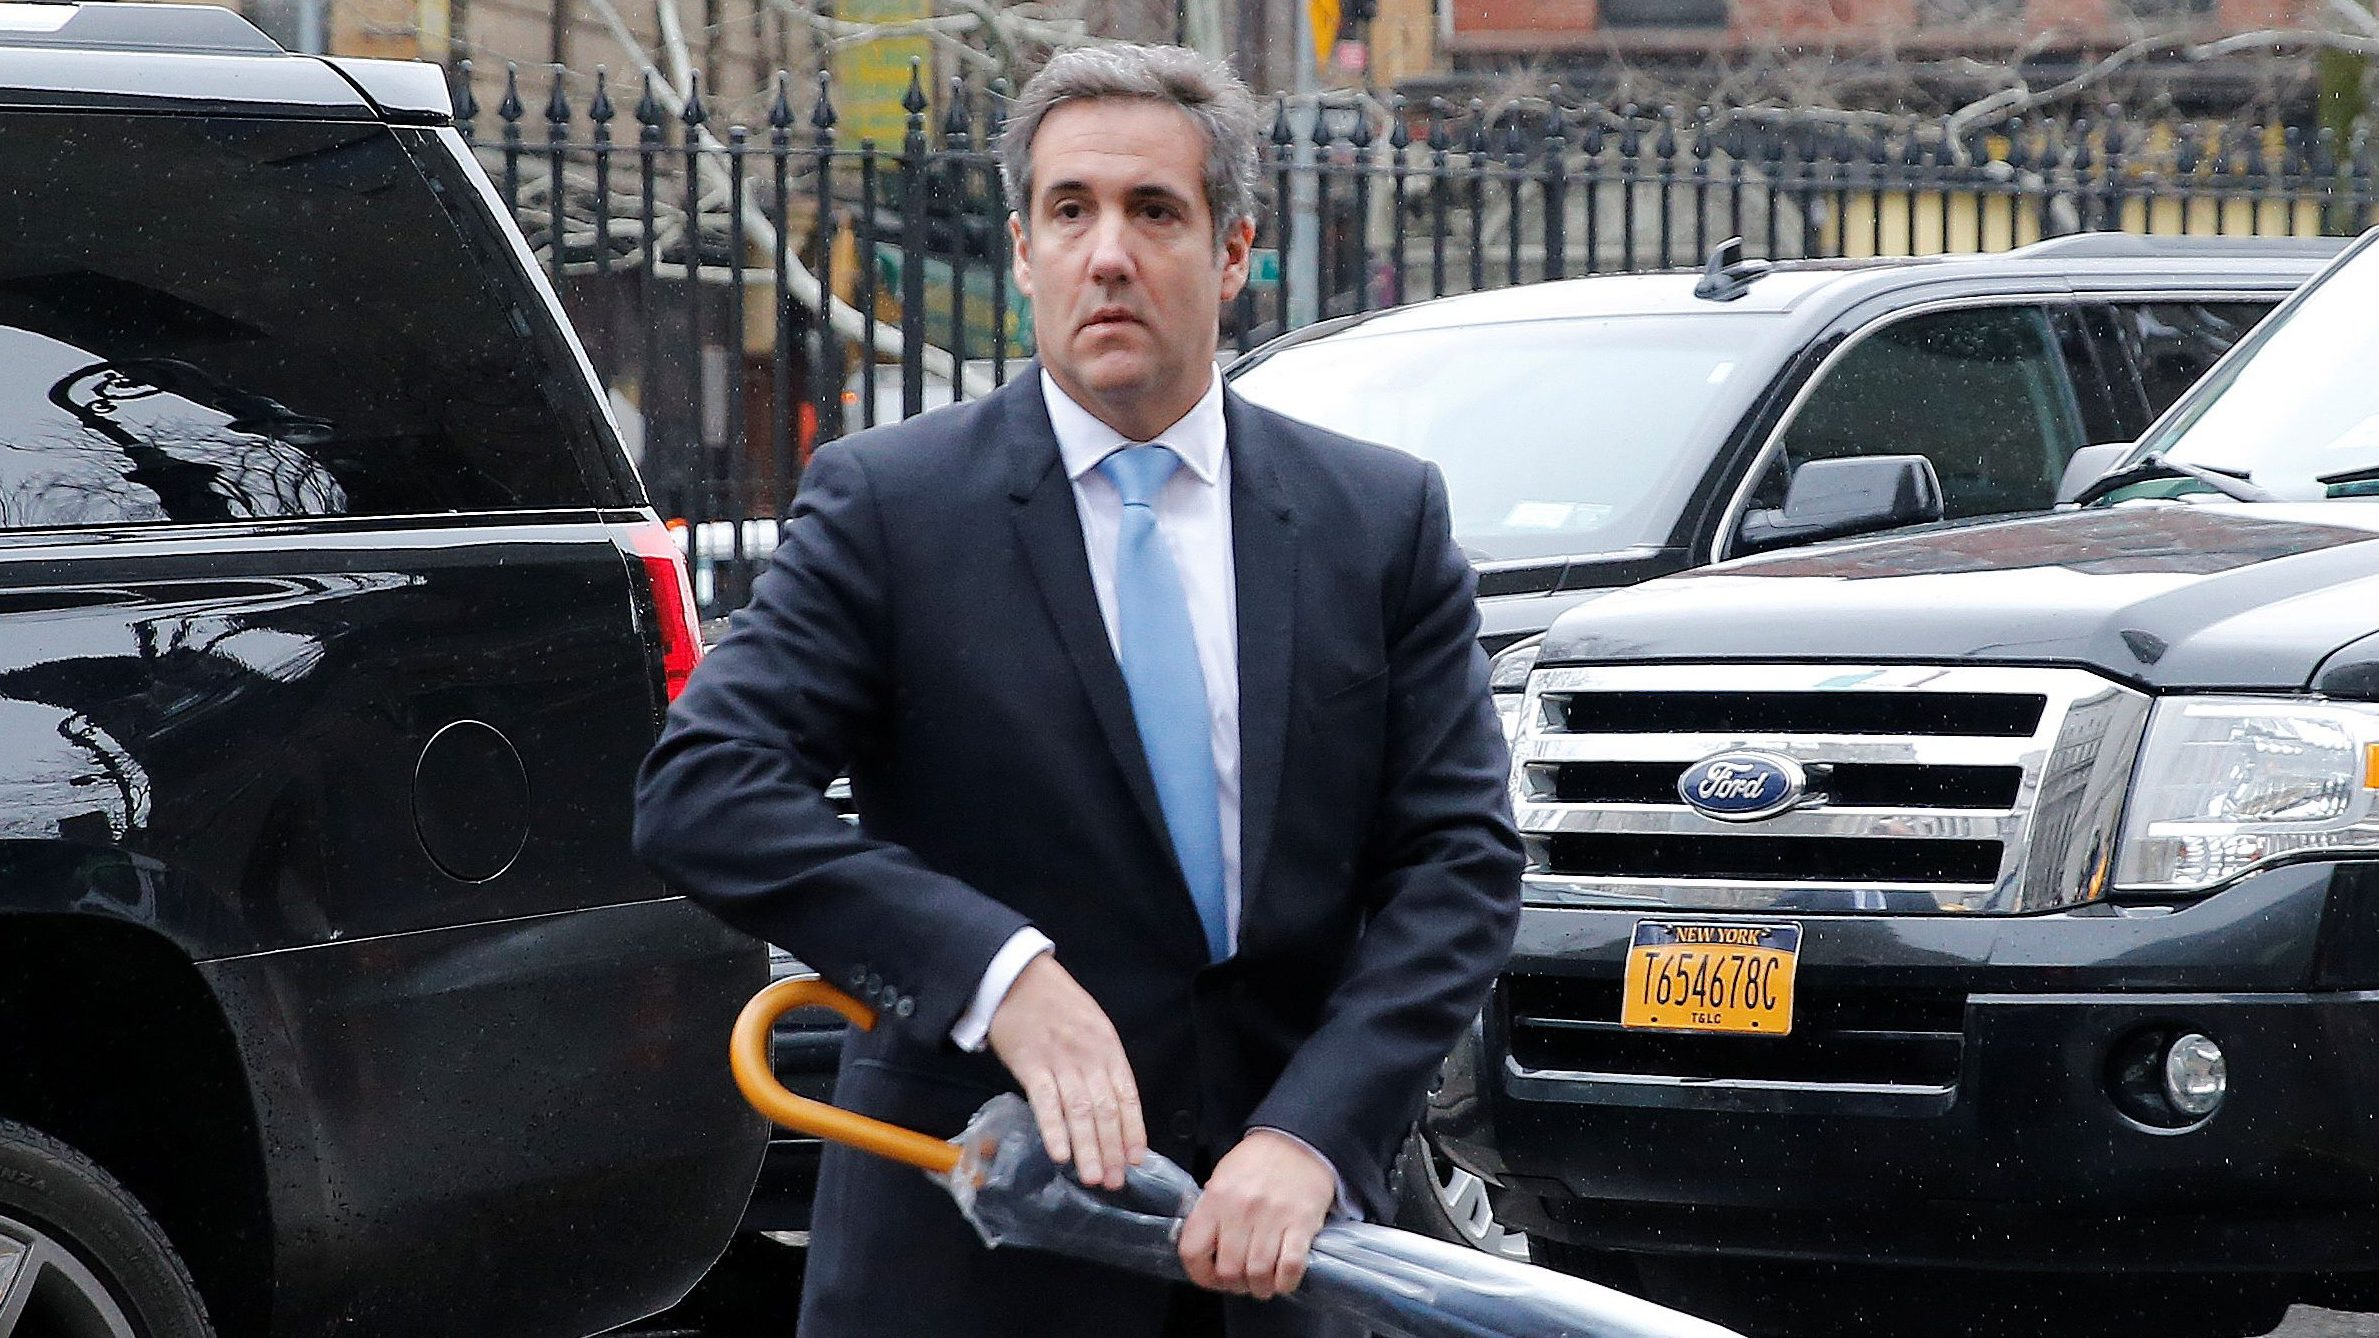 U.S. President Donald Trump's personal lawyer Michael Cohen arrives at federal court in the Manhattan borough of New York City, New York, U.S., April 16, 2018. REUTERS/Shannon Stapleton - RC1DA16F0140